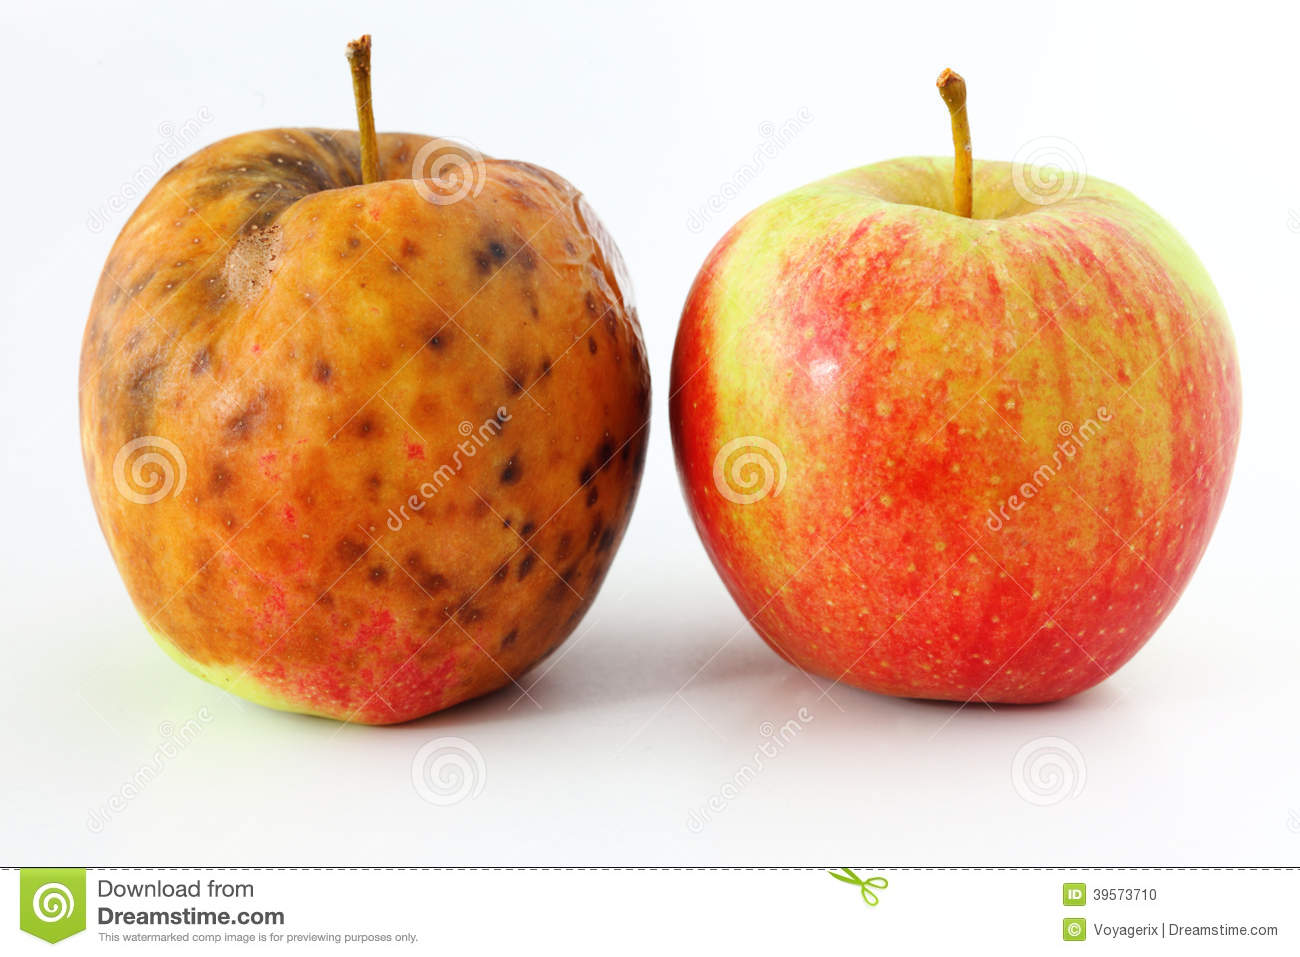 apple-spoiled-white-background-healthy-r